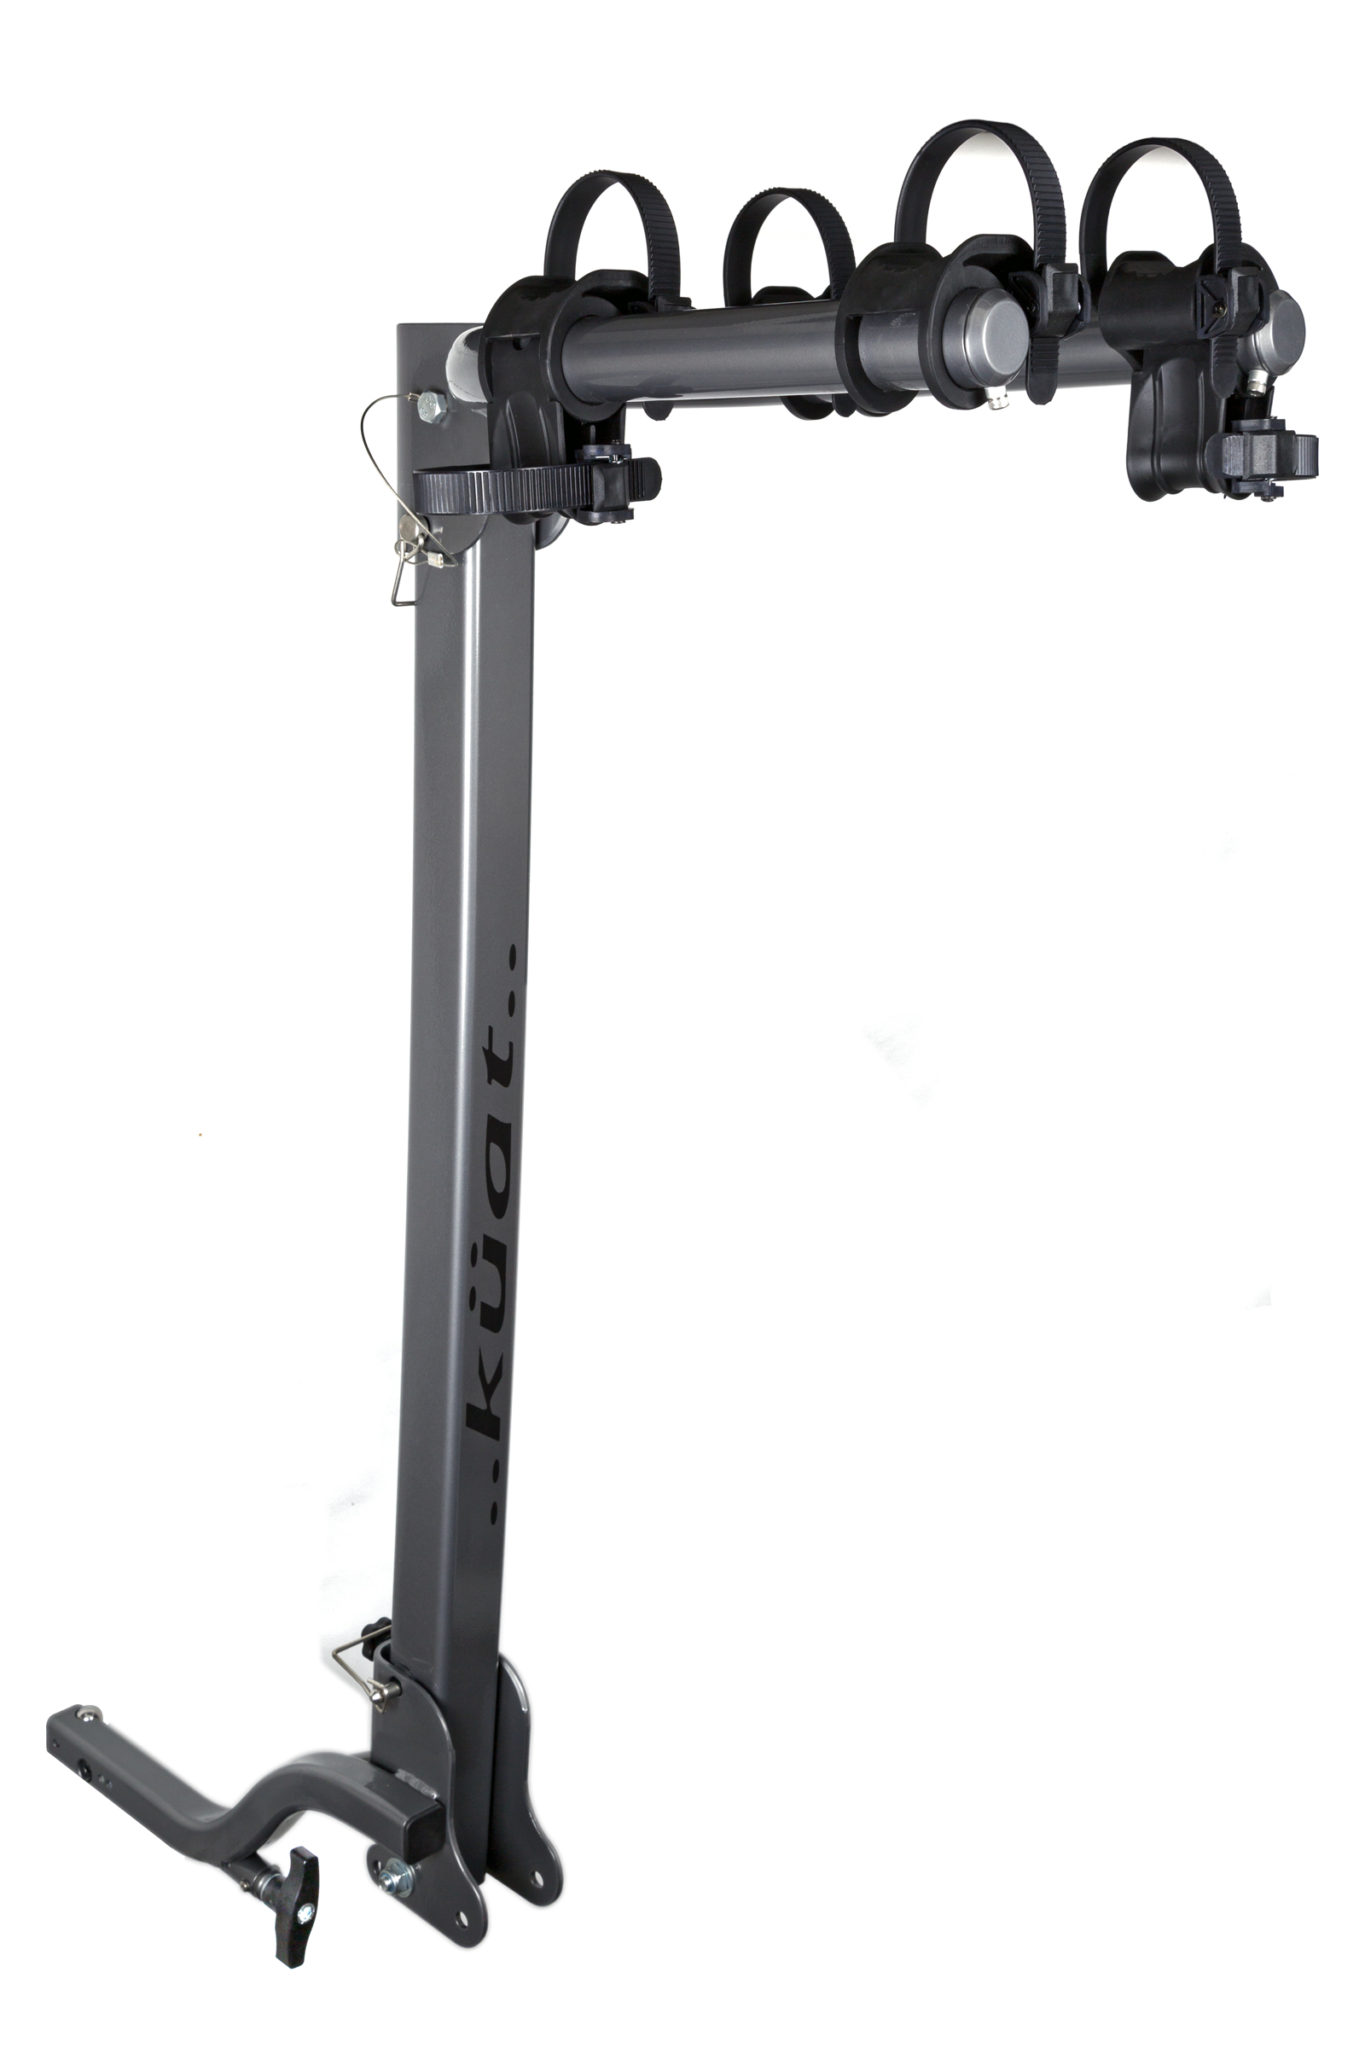 kuat prorack rack prices bike at photos racks specs accessories stock videos review k nv photo